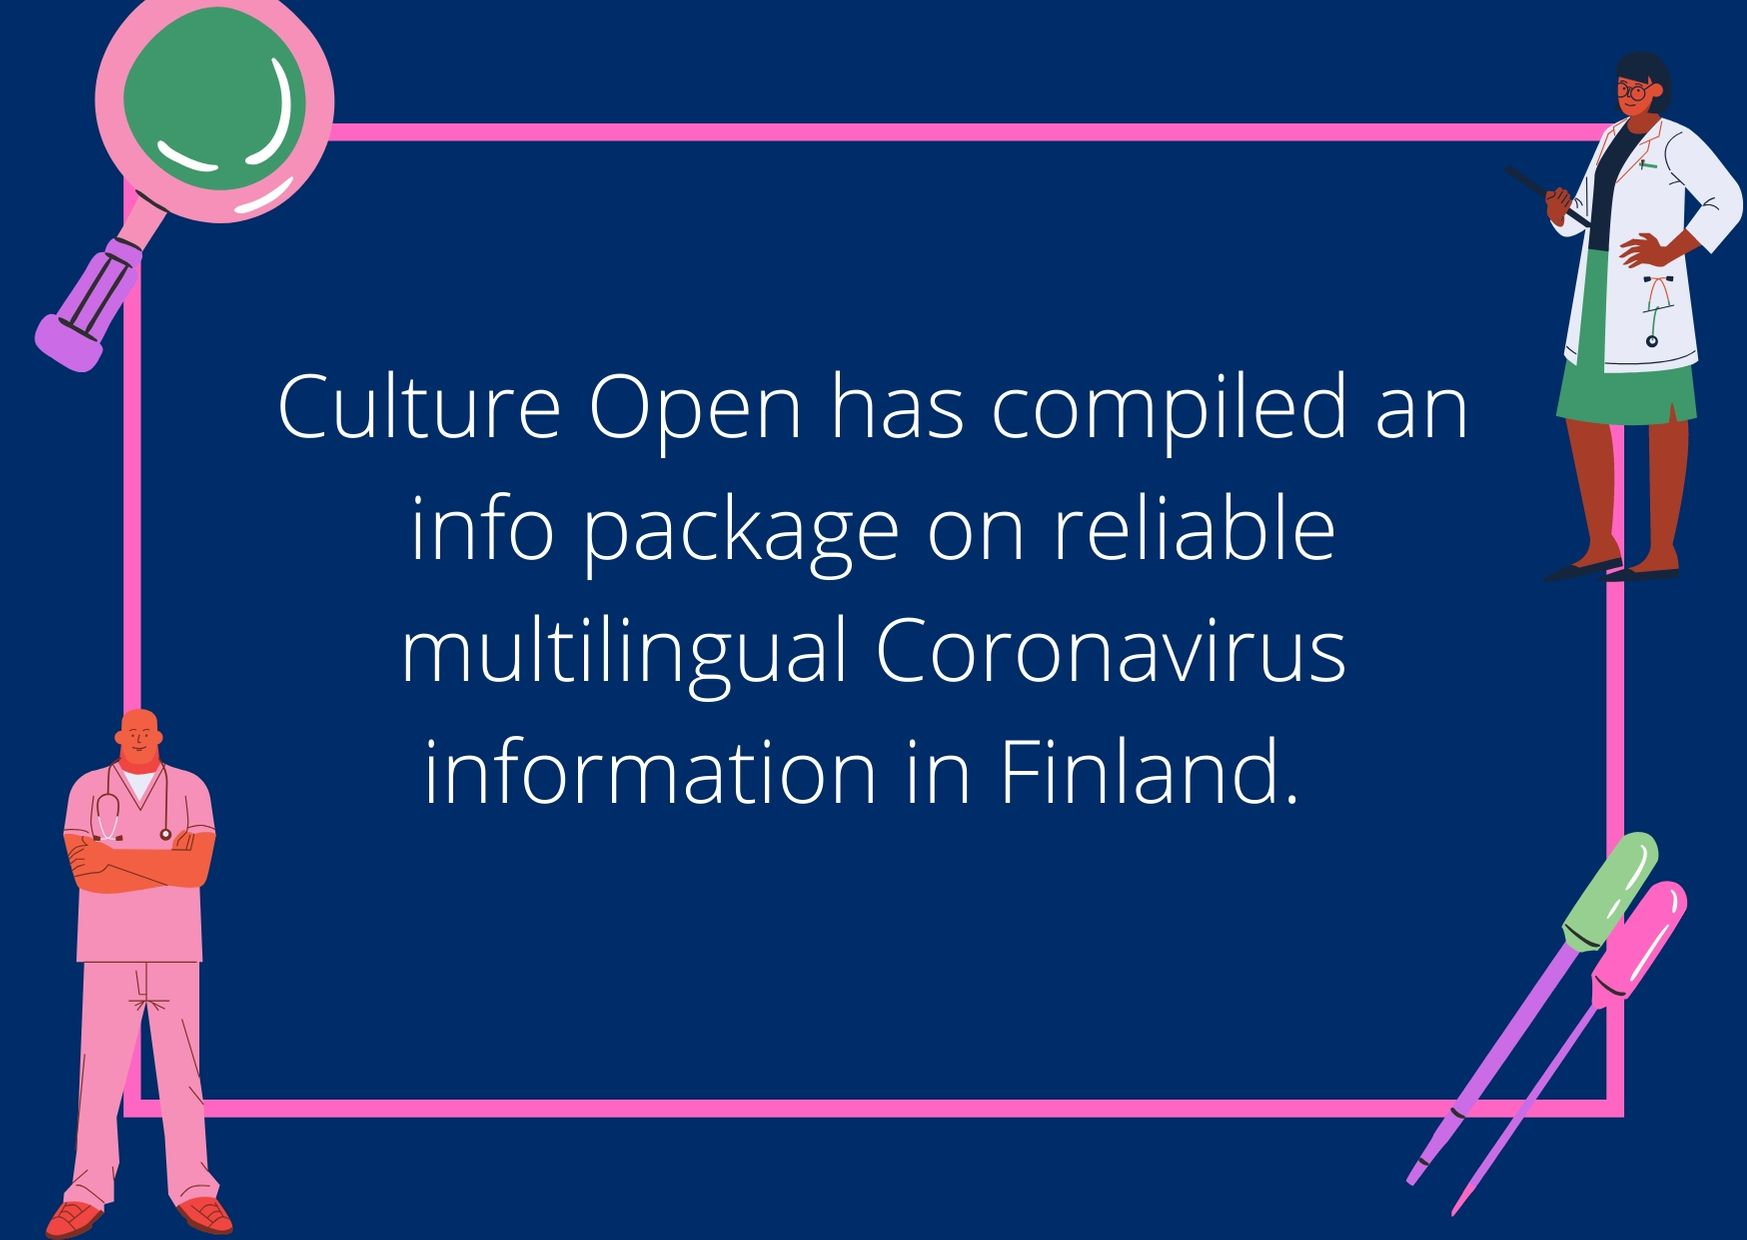 Culture Open has compiled an info package on reliable Coronavirus information